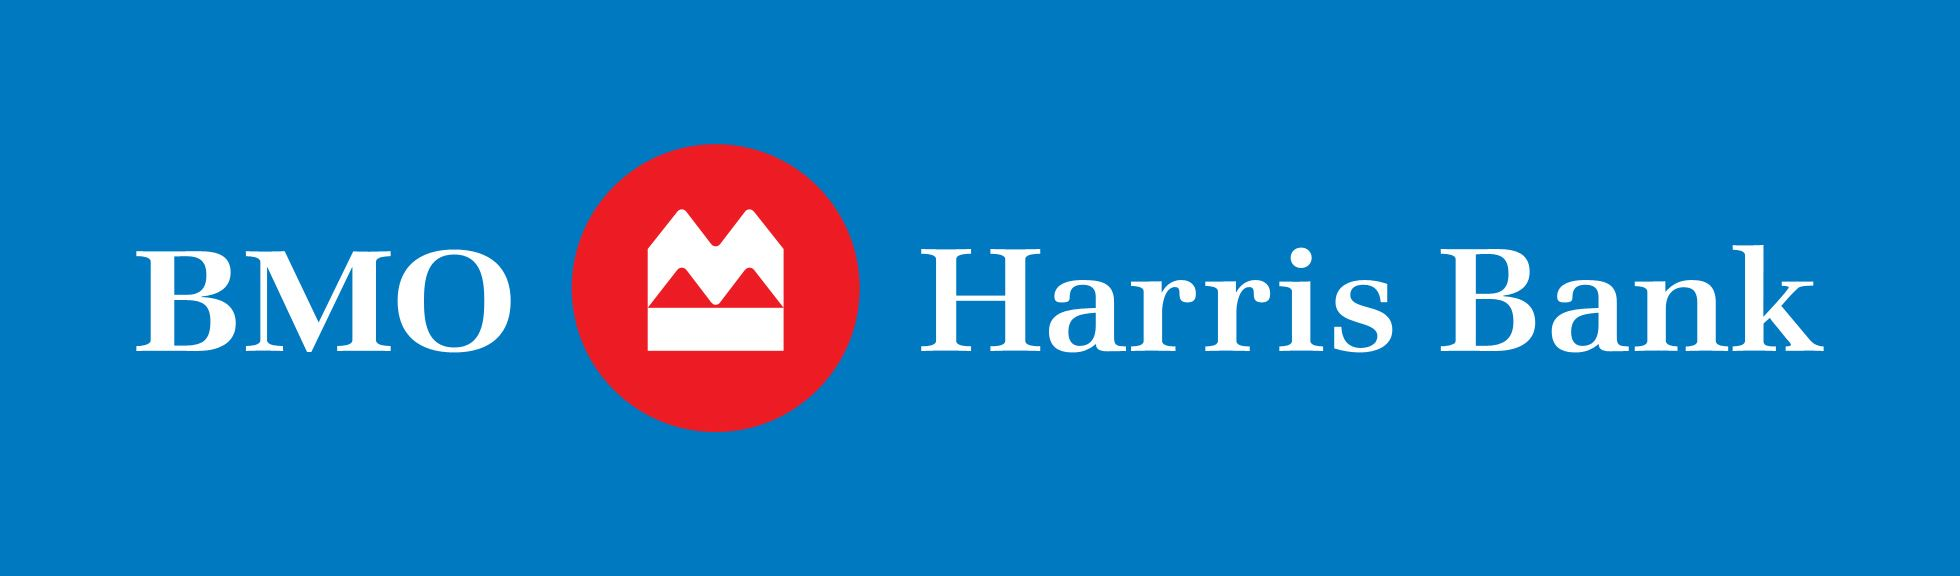 BMO Harris Bank logo Opens in new window